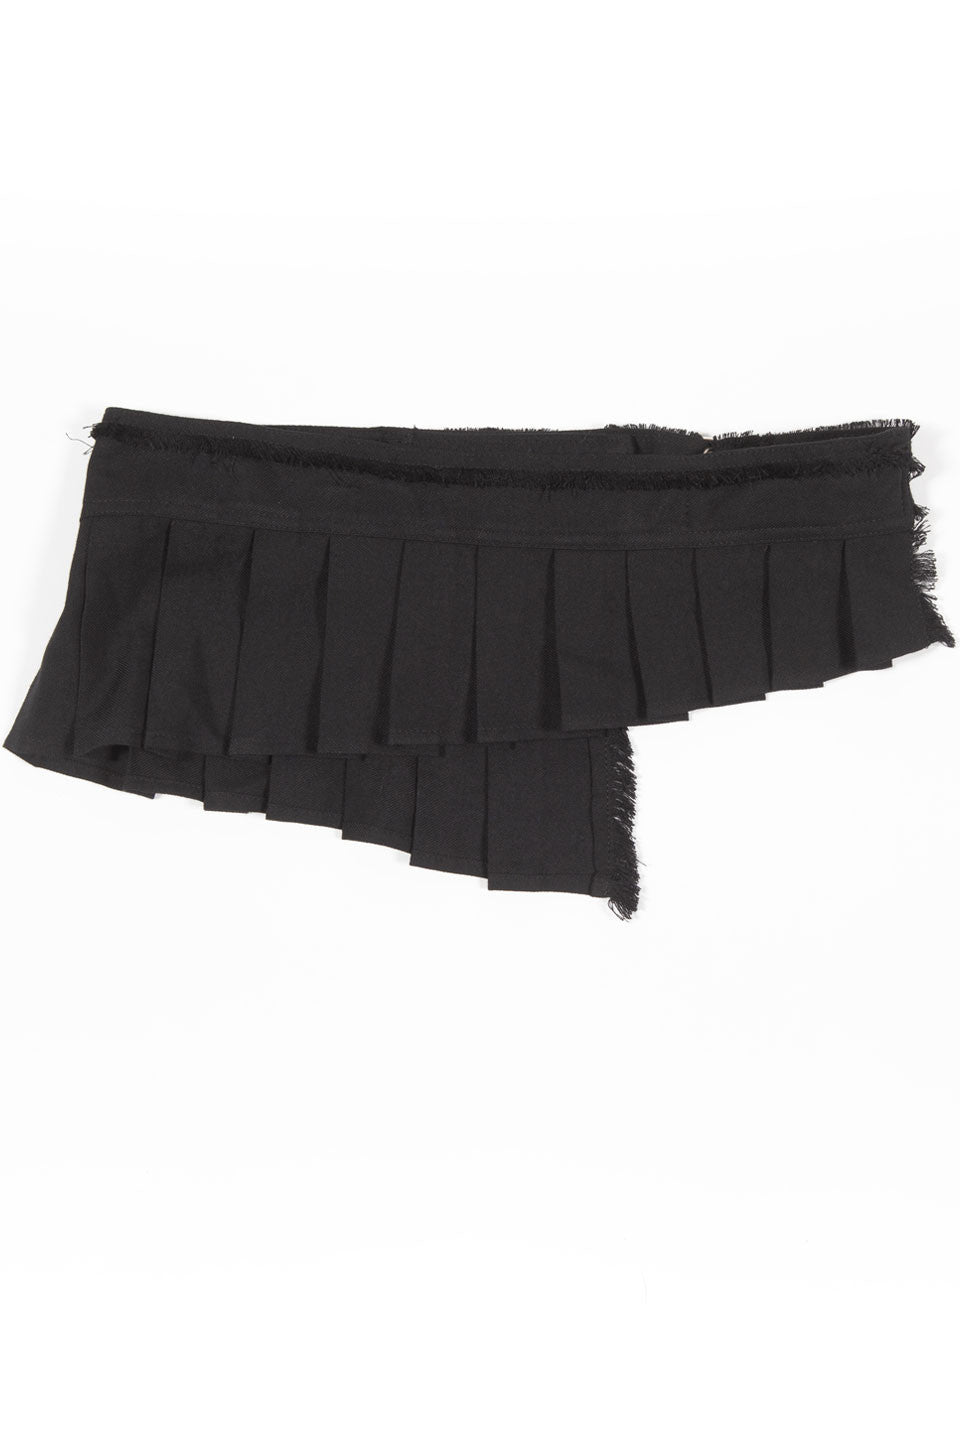 Born To Die Pleated Kilt Belt-Accessories-Lip Service